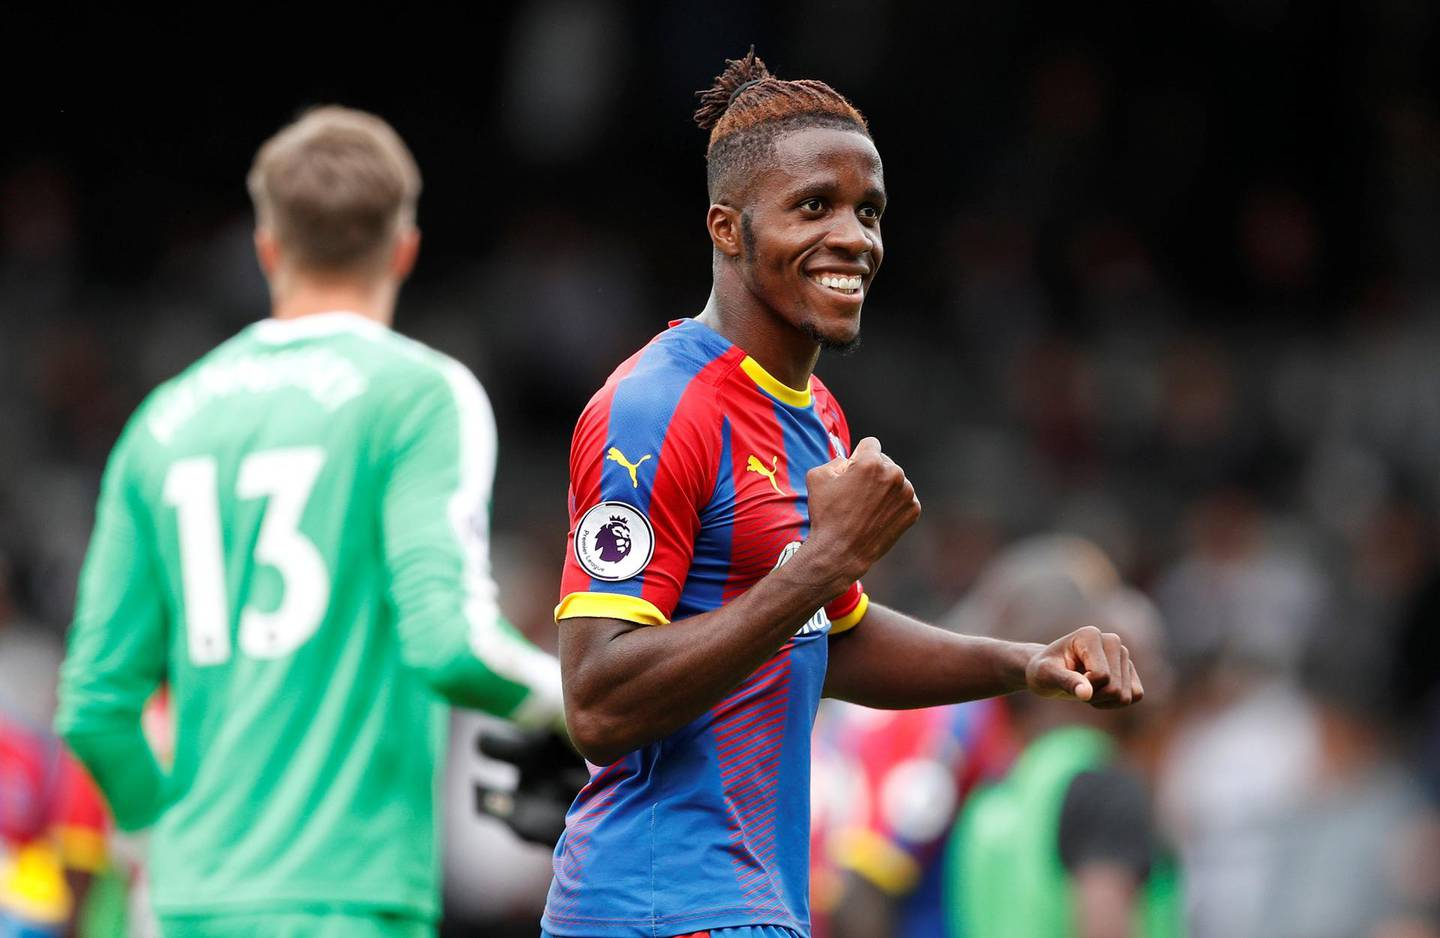 """Soccer Football - Premier League - Fulham v Crystal Palace - Craven Cottage, London, Britain - August 11, 2018   Crystal Palace's Wilfried Zaha celebrates after the match   Action Images via Reuters/John Sibley    EDITORIAL USE ONLY. No use with unauthorized audio, video, data, fixture lists, club/league logos or """"live"""" services. Online in-match use limited to 75 images, no video emulation. No use in betting, games or single club/league/player publications.  Please contact your account representative for further details."""